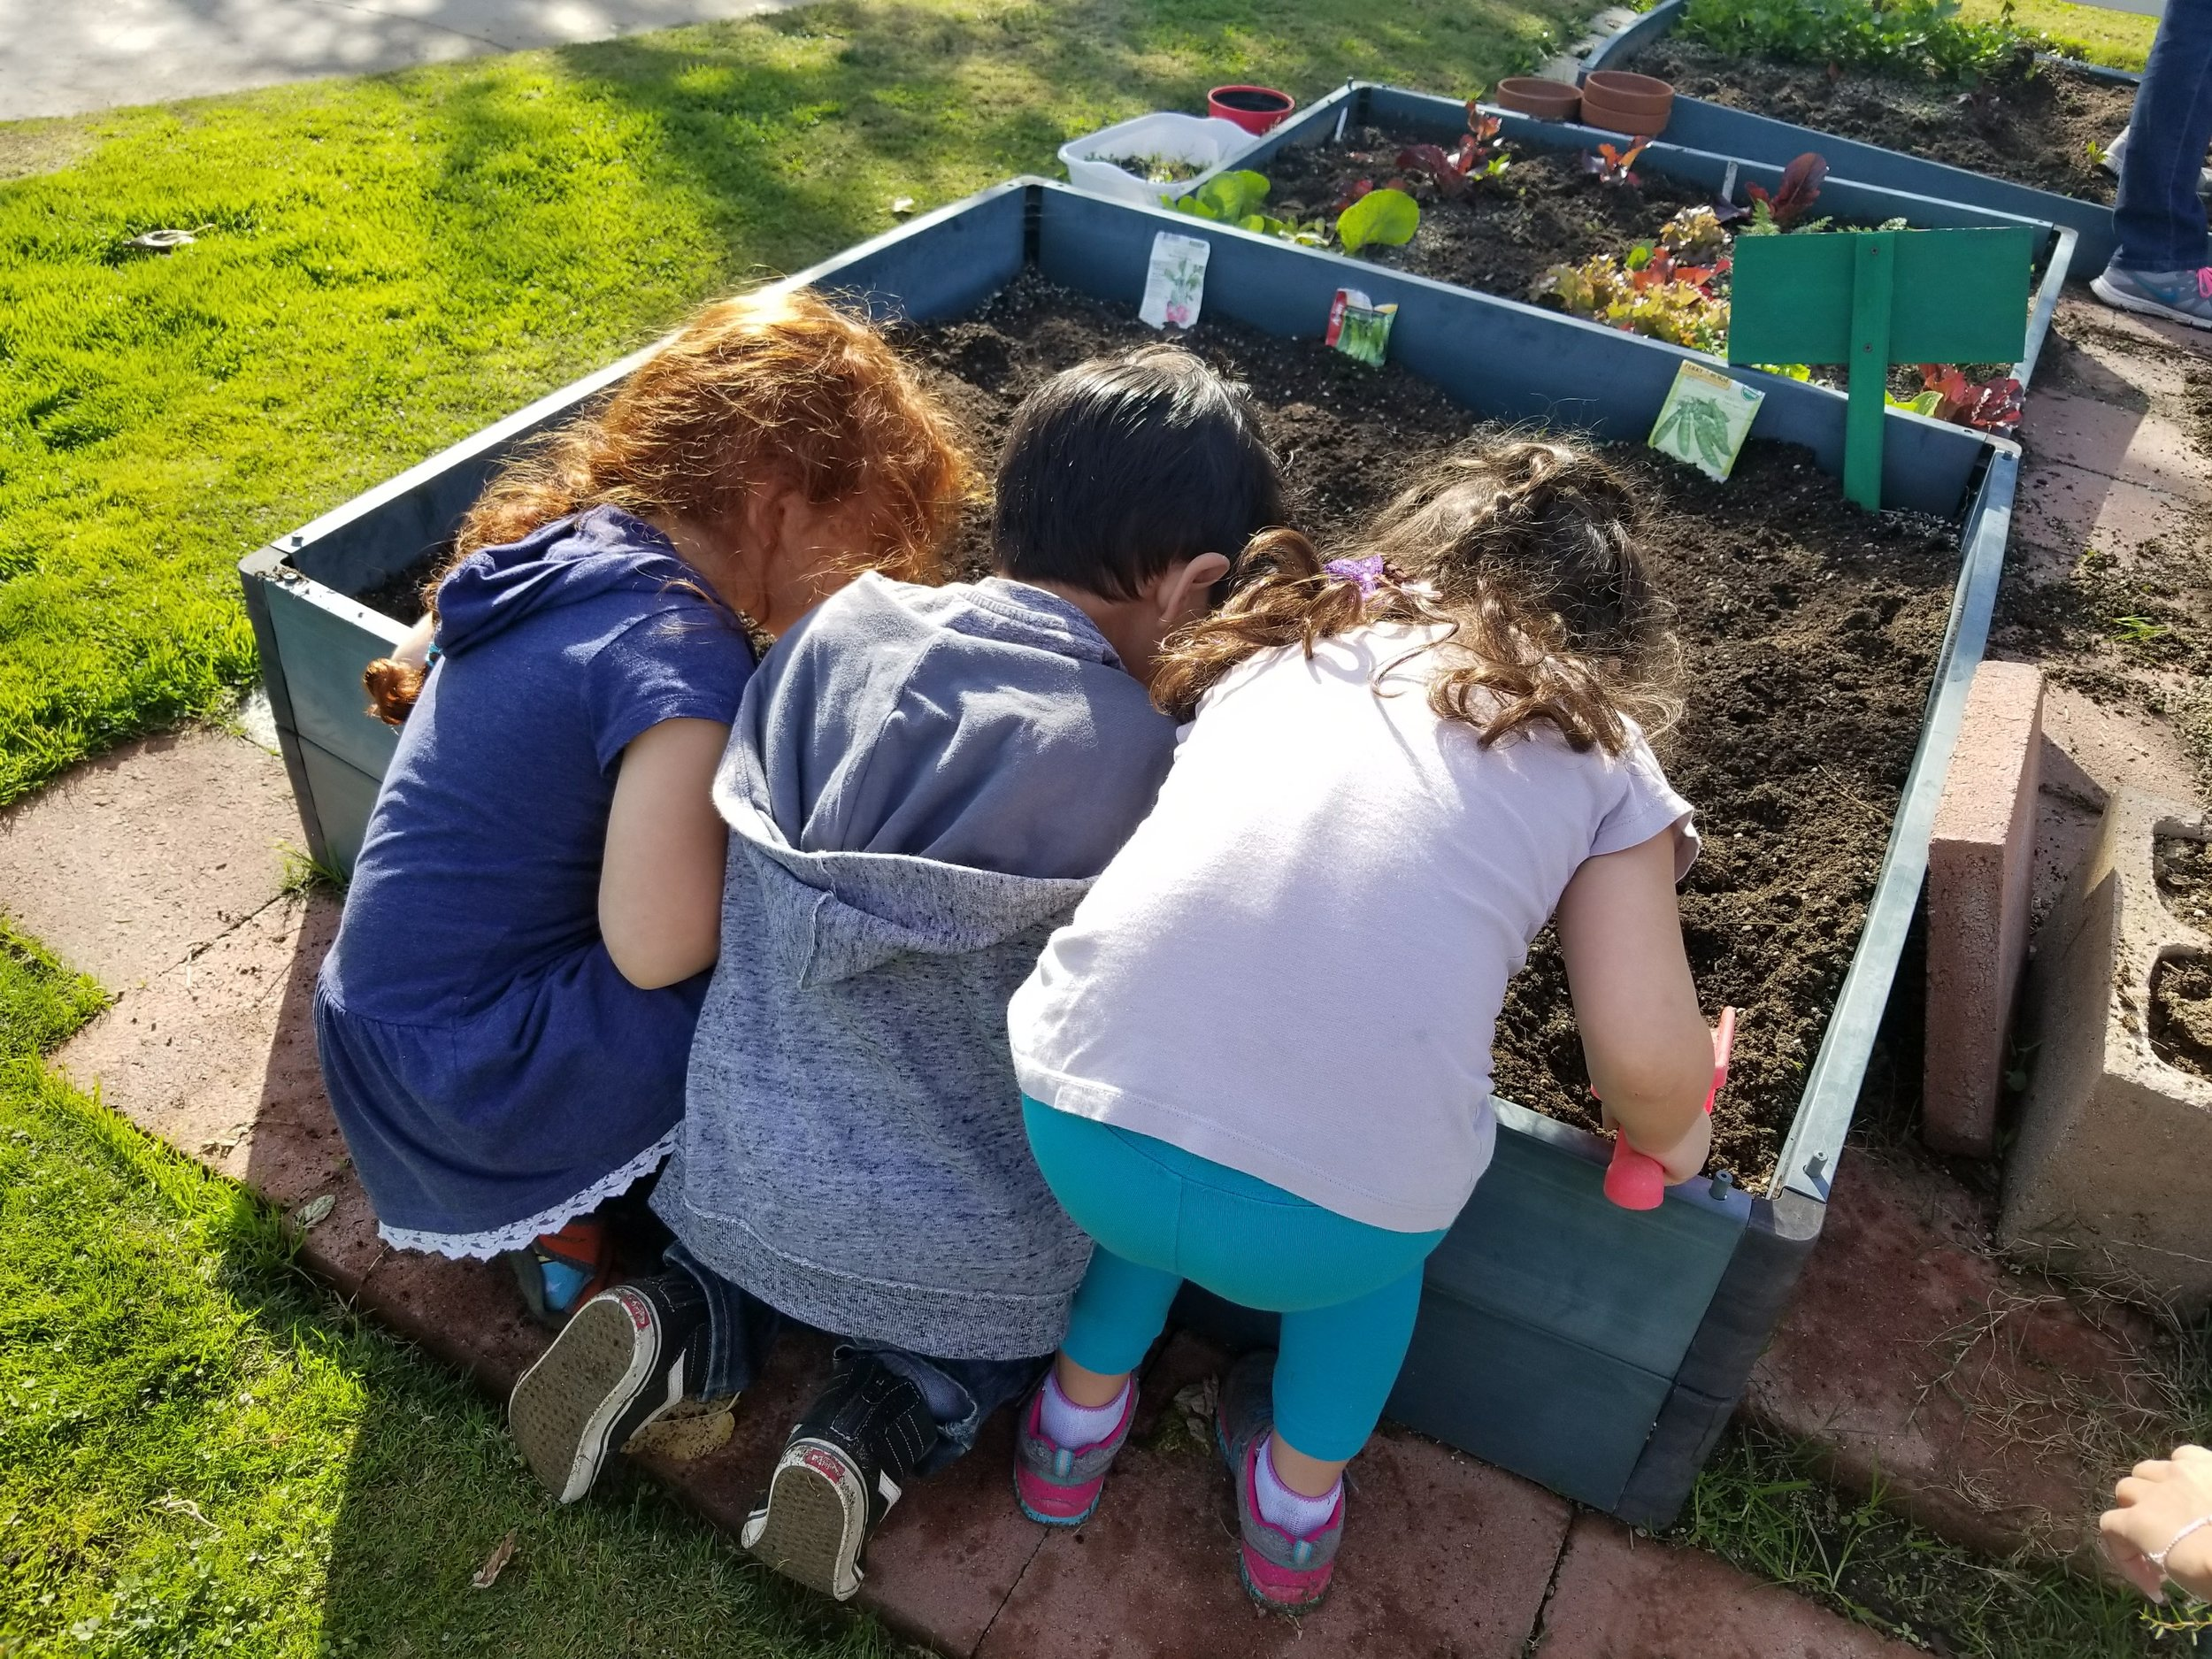 GROW - Our students help plan, plant and maintain our garden. We grow plants and vegetables to eat for snack time, feed to our pet guinea pigs and attract butterflies.